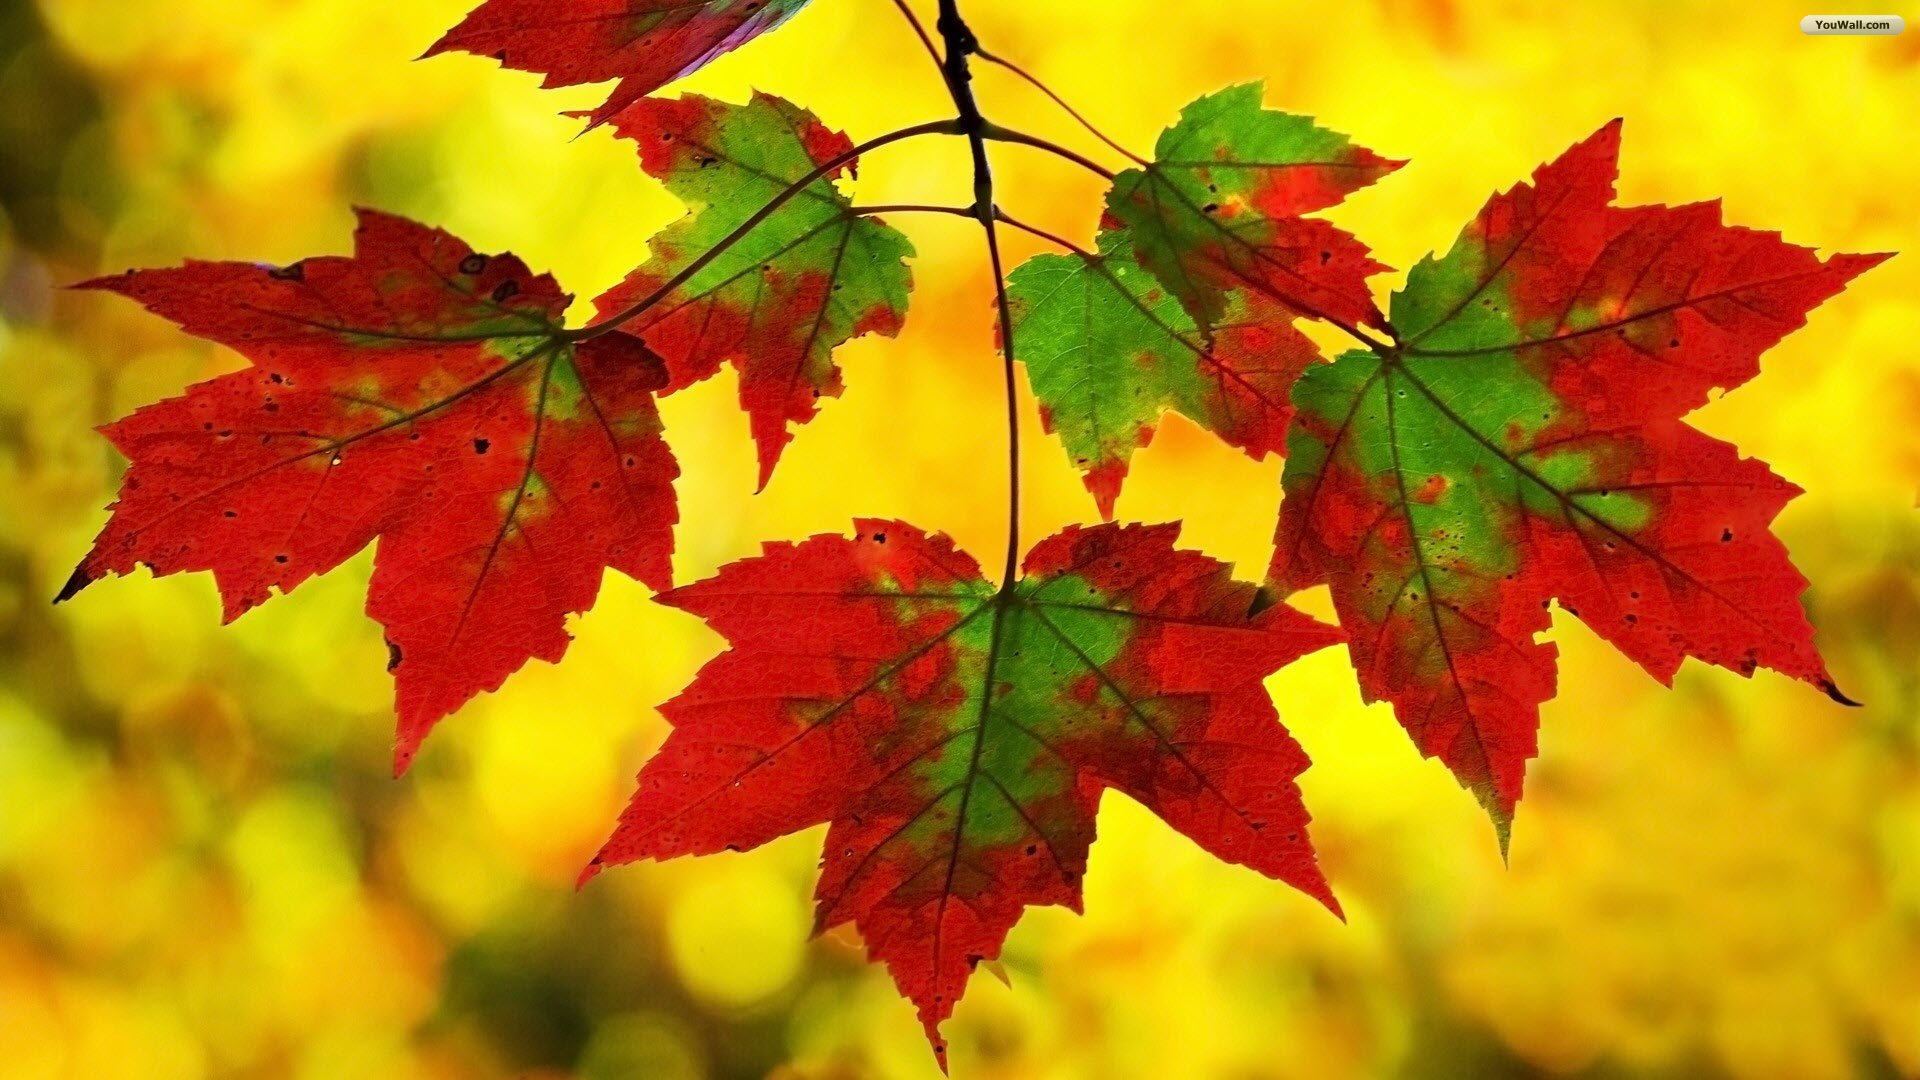 Fall Android Wallpaper Android Wallpaper Fall Colors 1920x1080